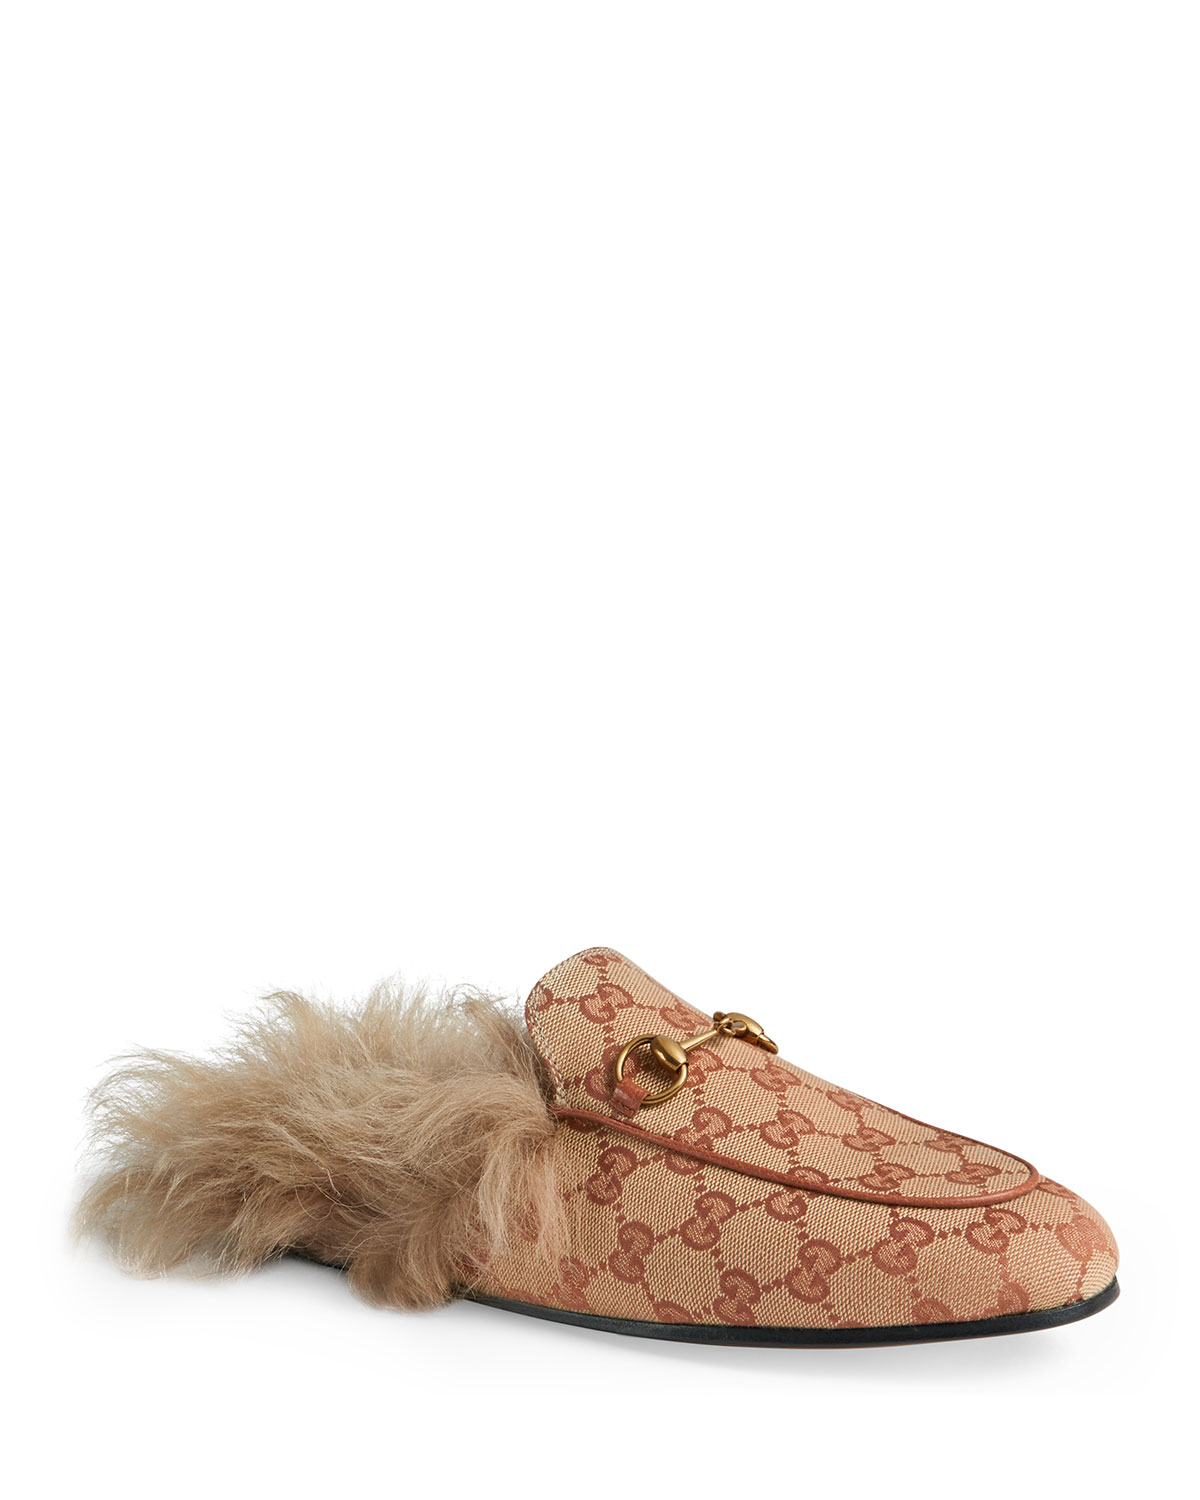 2e4836727 Gucci Princetown Fur-Lined GG Mule Loafers | Neiman Marcus